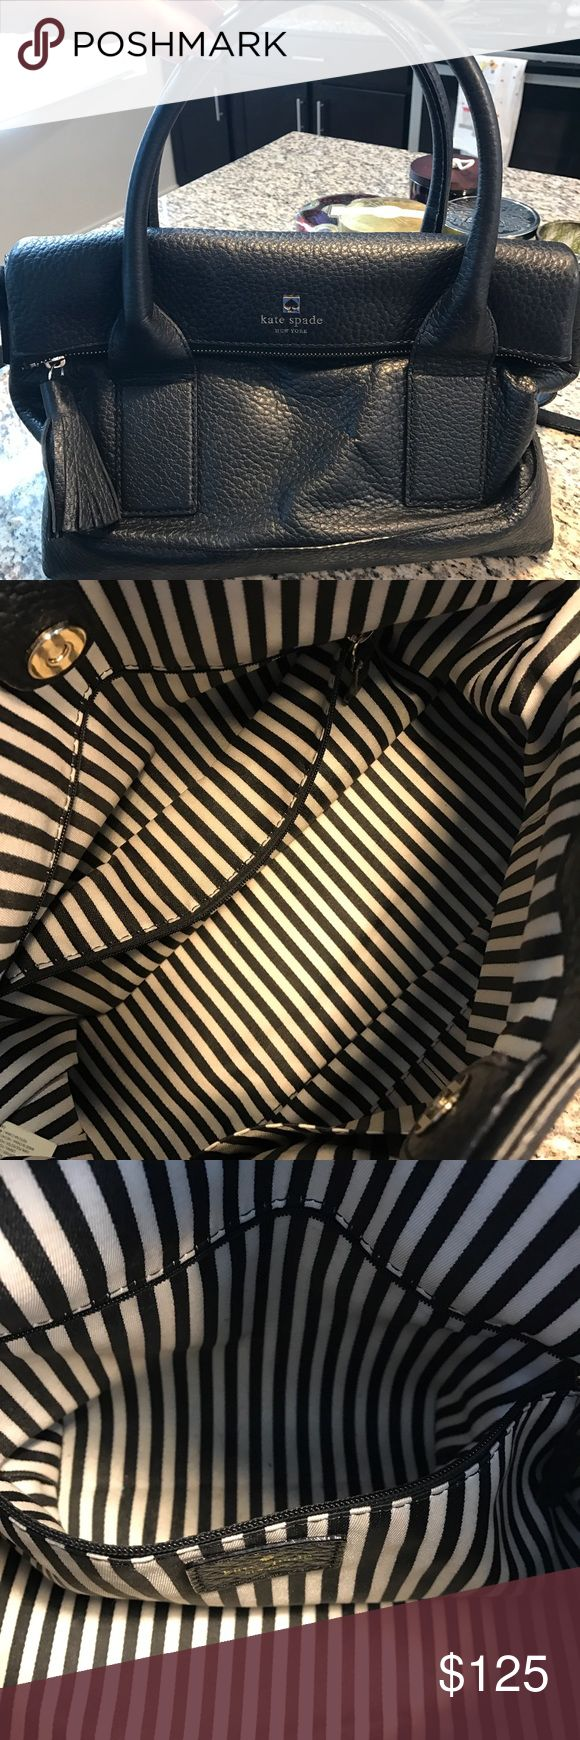 Kate spade handbag Gently worn. Nothing on the exterior of the bag, only one little blue mark on the inside small part of the purse that's hardly noticeable you can't even notice in the picture and maybe just natural signs of wear on inside but nothing noticeable, as you can see in picture. Comes with original dust bag as well. I'm super sad to part with this but I'm having a baby and I know I'll never use this handbag want to go to a good home! This is a cross-body as well kate spade Bags…